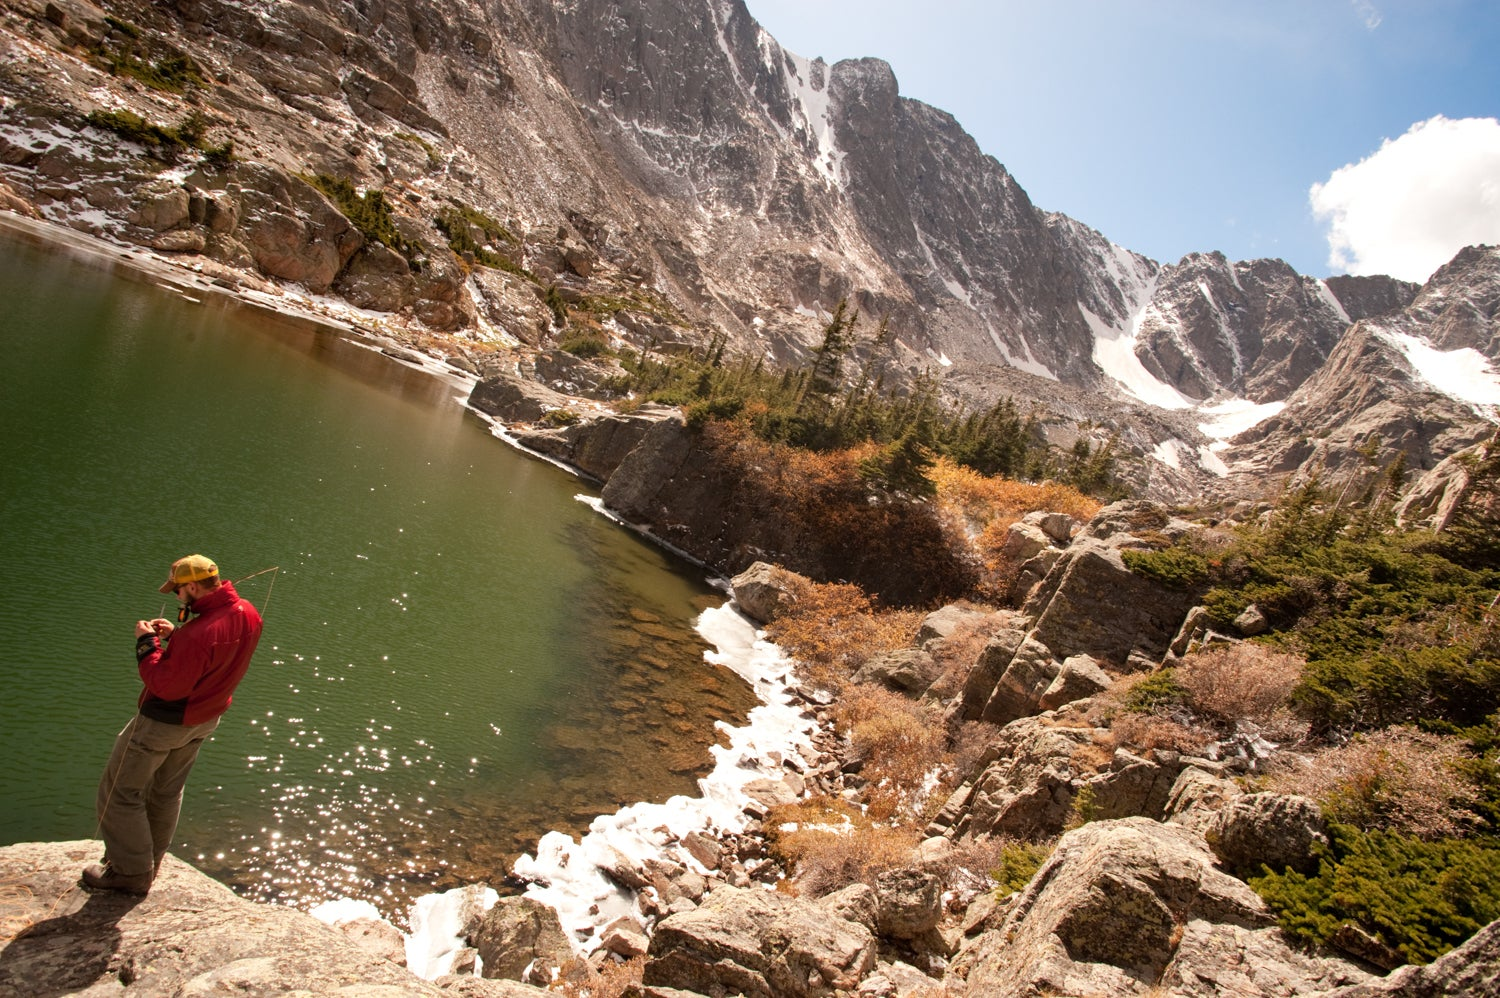 flyfishing, Rocky Mountain National Park in Colorado